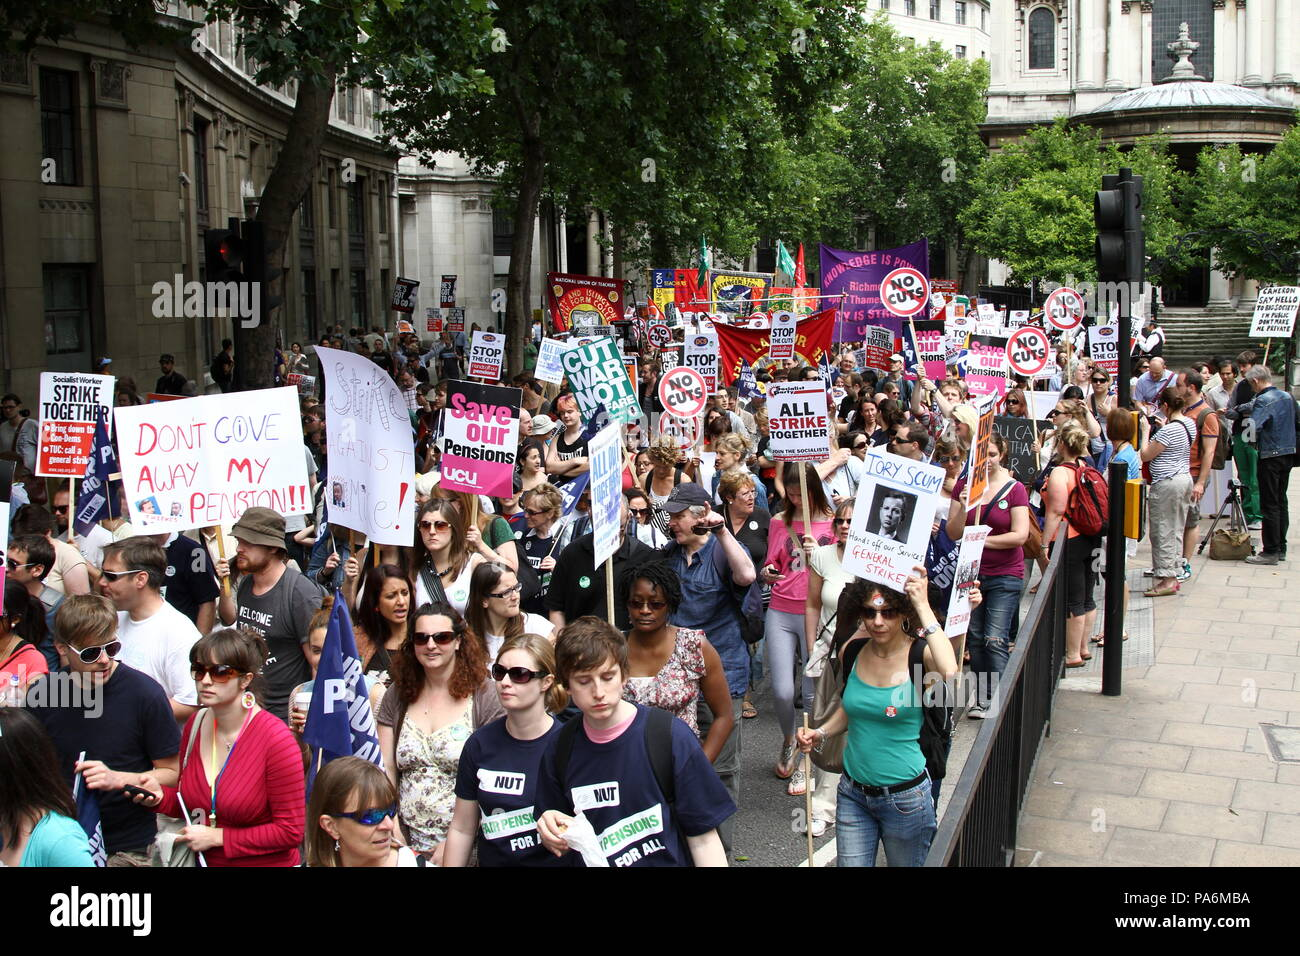 Public sector workers demonstration for protecting pensions, austerity, Public funding cuts, jobs, politics and trade unions. - Stock Image